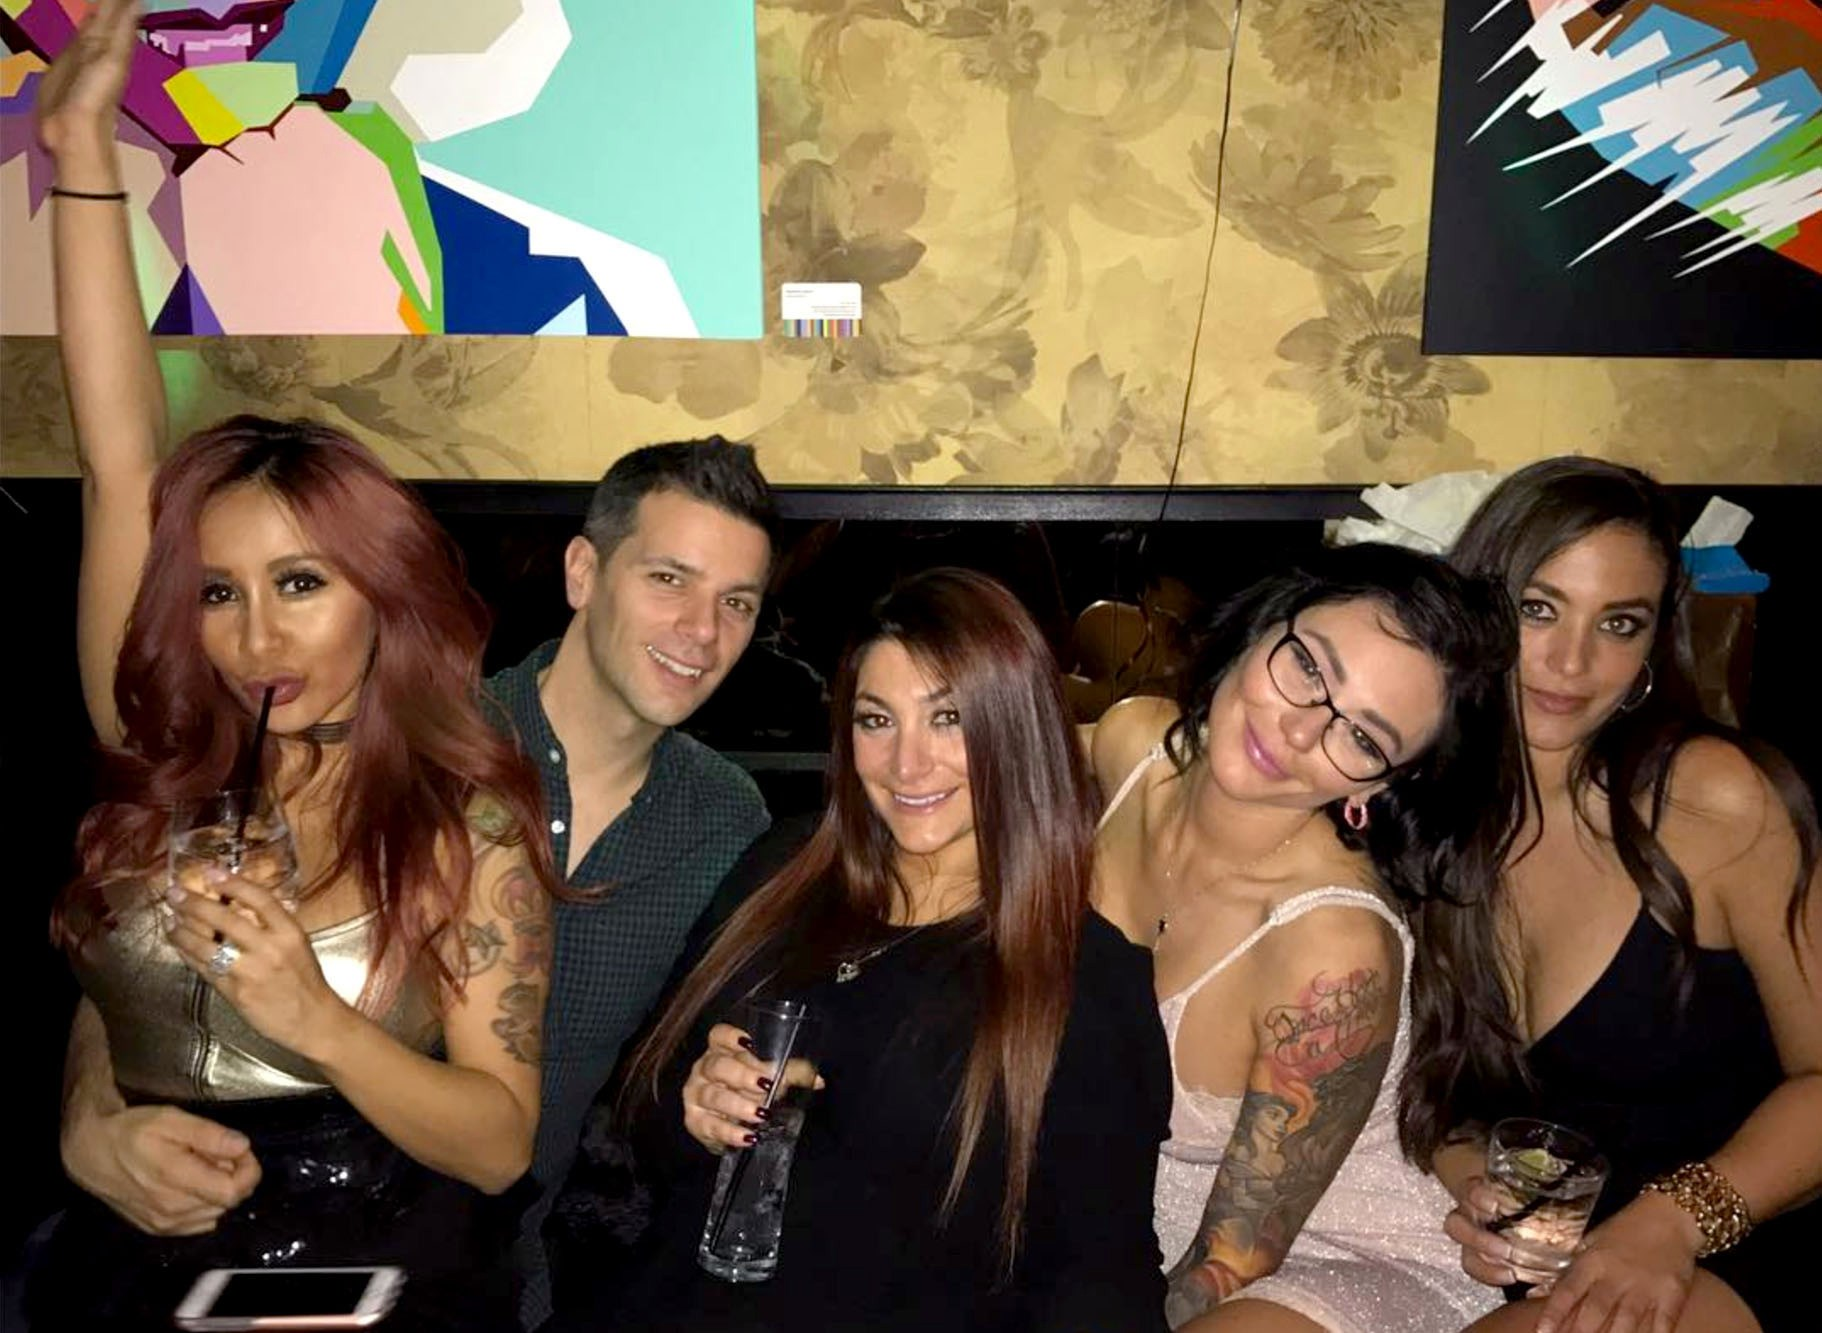 """**Jersey Shore**  Can you believe it's been FIVE whole years since we saw the gang of MTV's *Jersey Shore*?! Cast members of the hit series including Nicole """"Snooki"""" Polizzi, Jenni """"JWoww"""" Farley and Deena Cortese got together to celebrate the 30th birthday of Sammi """"Sweetheart"""" Giancola at a club in New York City over the weekend."""